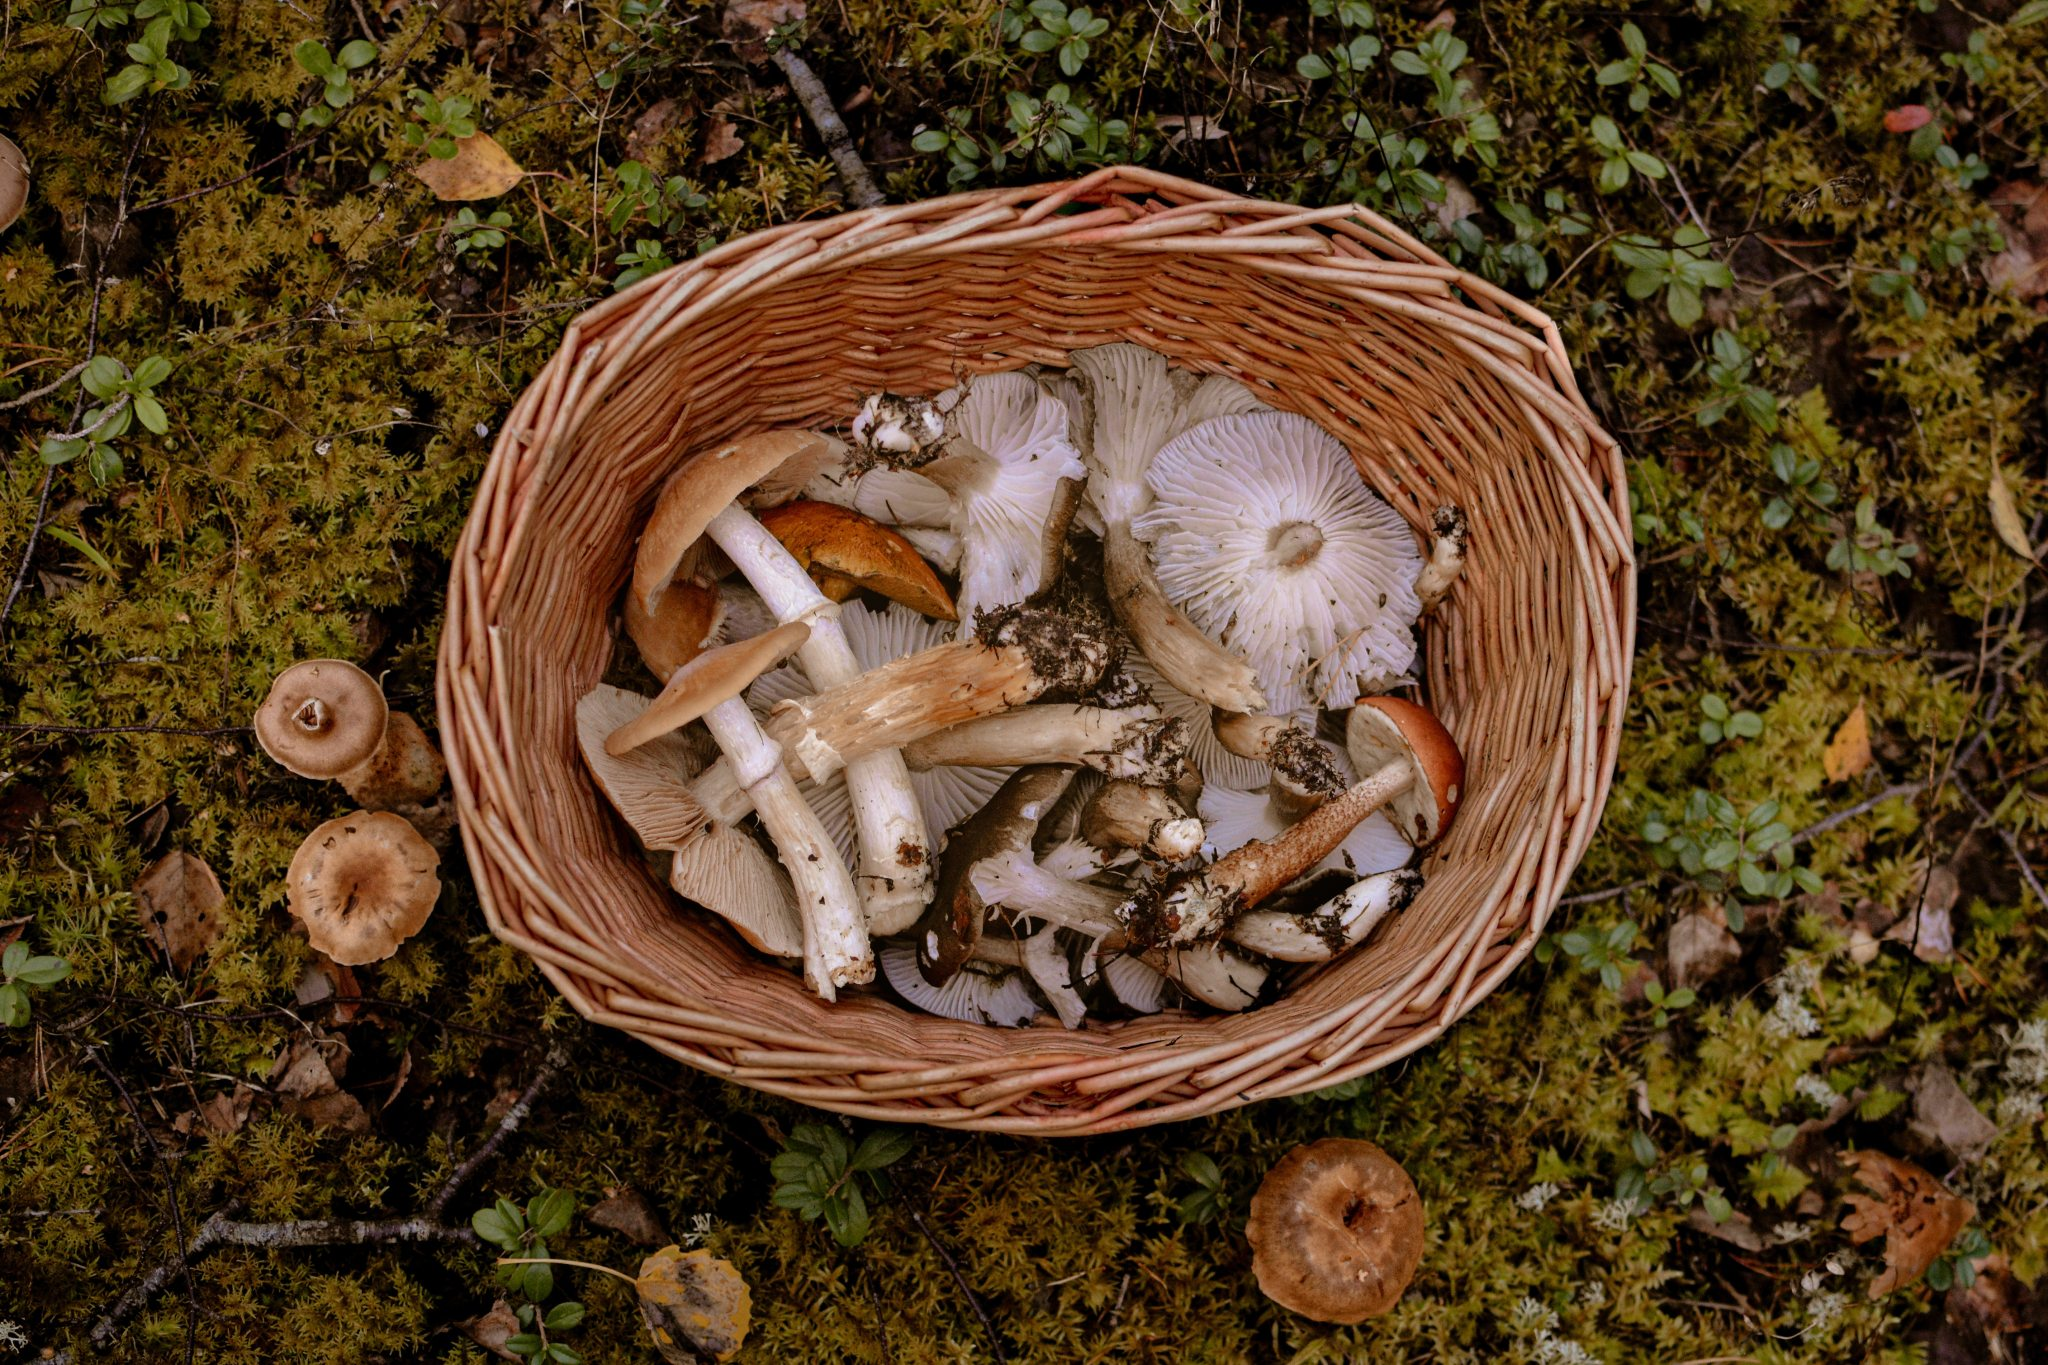 brown-and-white-mushrooms-in-brown-woven-basket-3672955